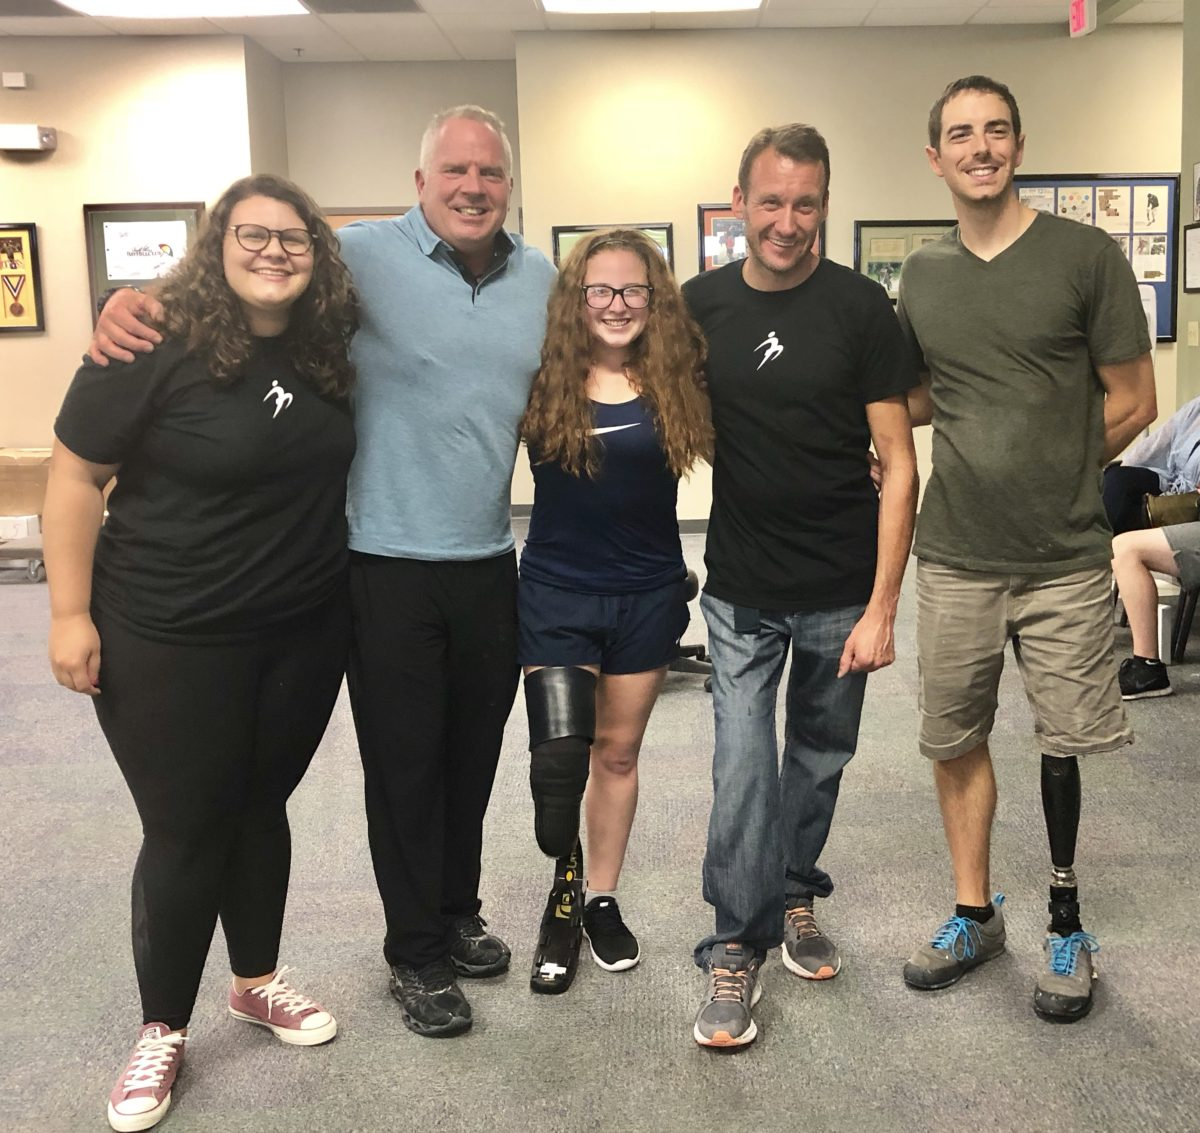 Shaylyn Runs For First Time in Her Life with Prosthetic Leg